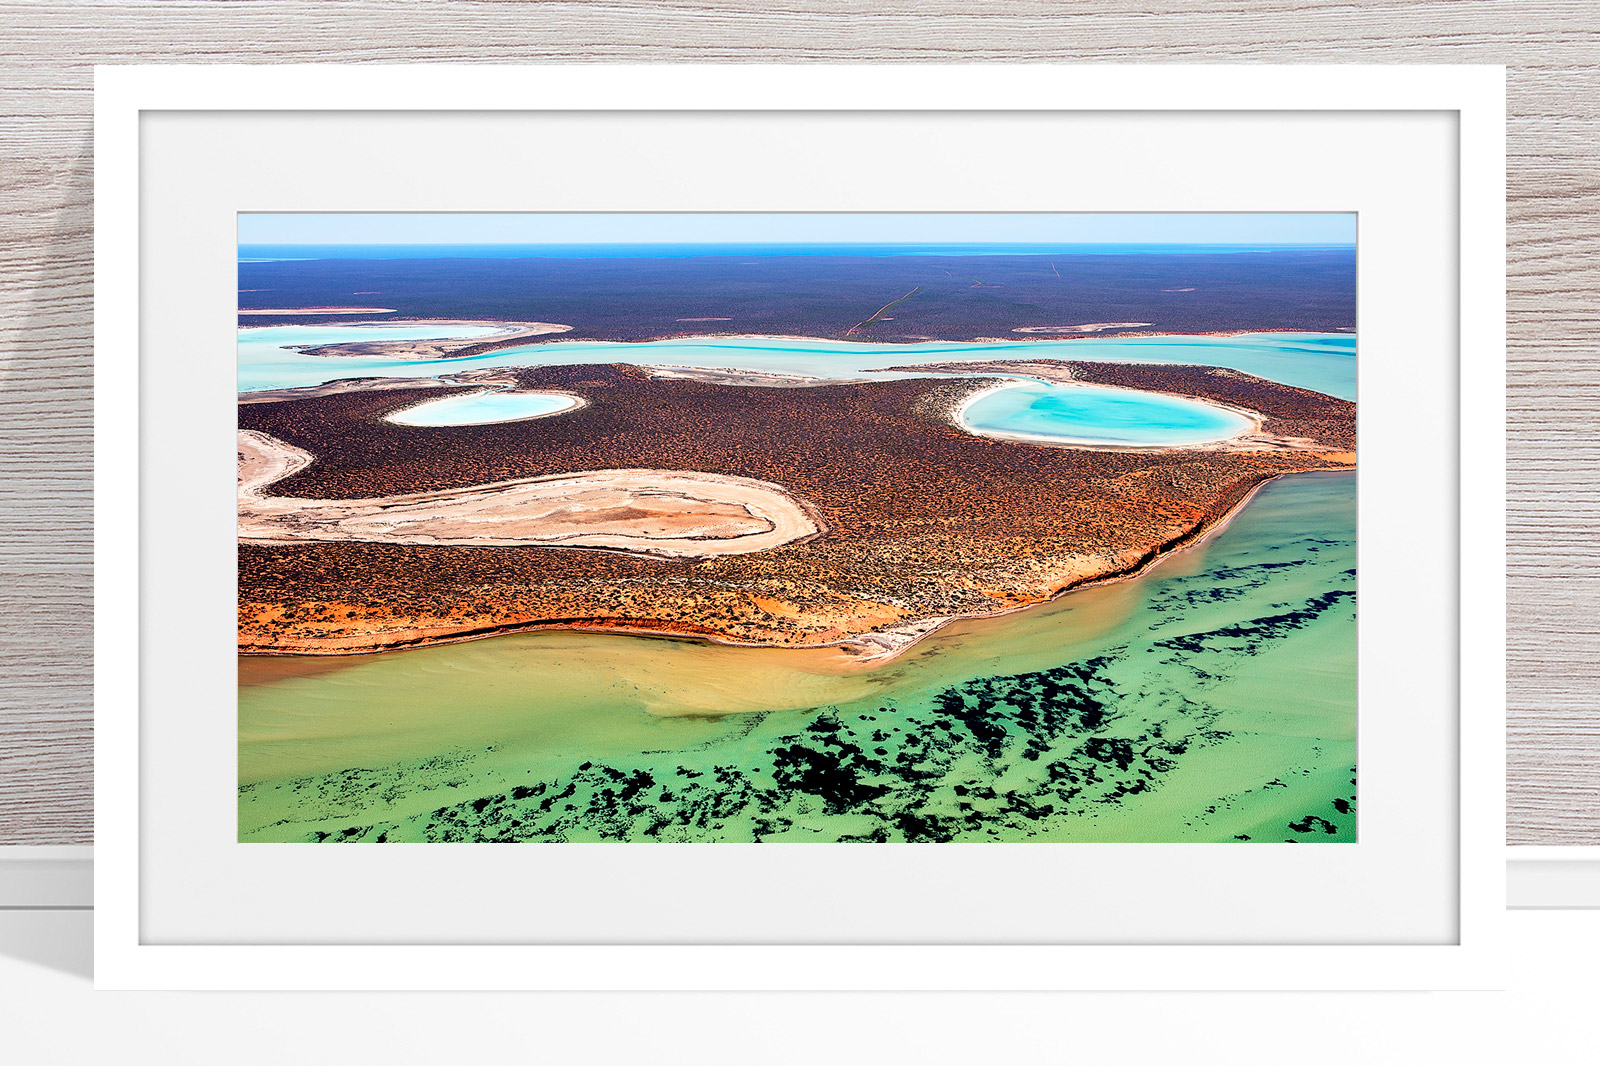 019 - Jason Mazur - 'Big Lagoon, Shark Bay' White Frame